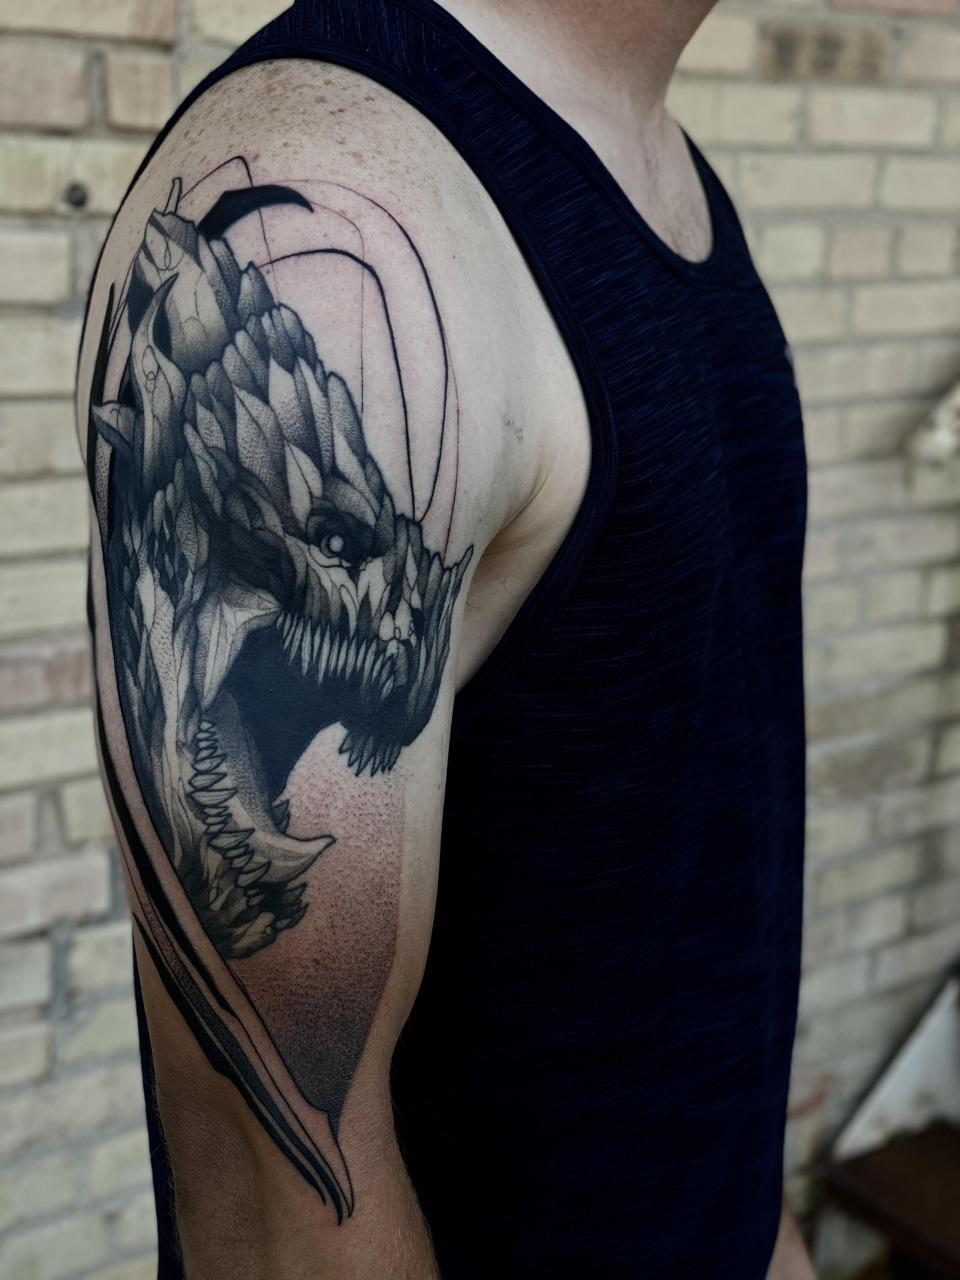 Half fresh half healed dragon started back in January by Max LaCroix (me) from Empire Inks Studio in Appleton, WI